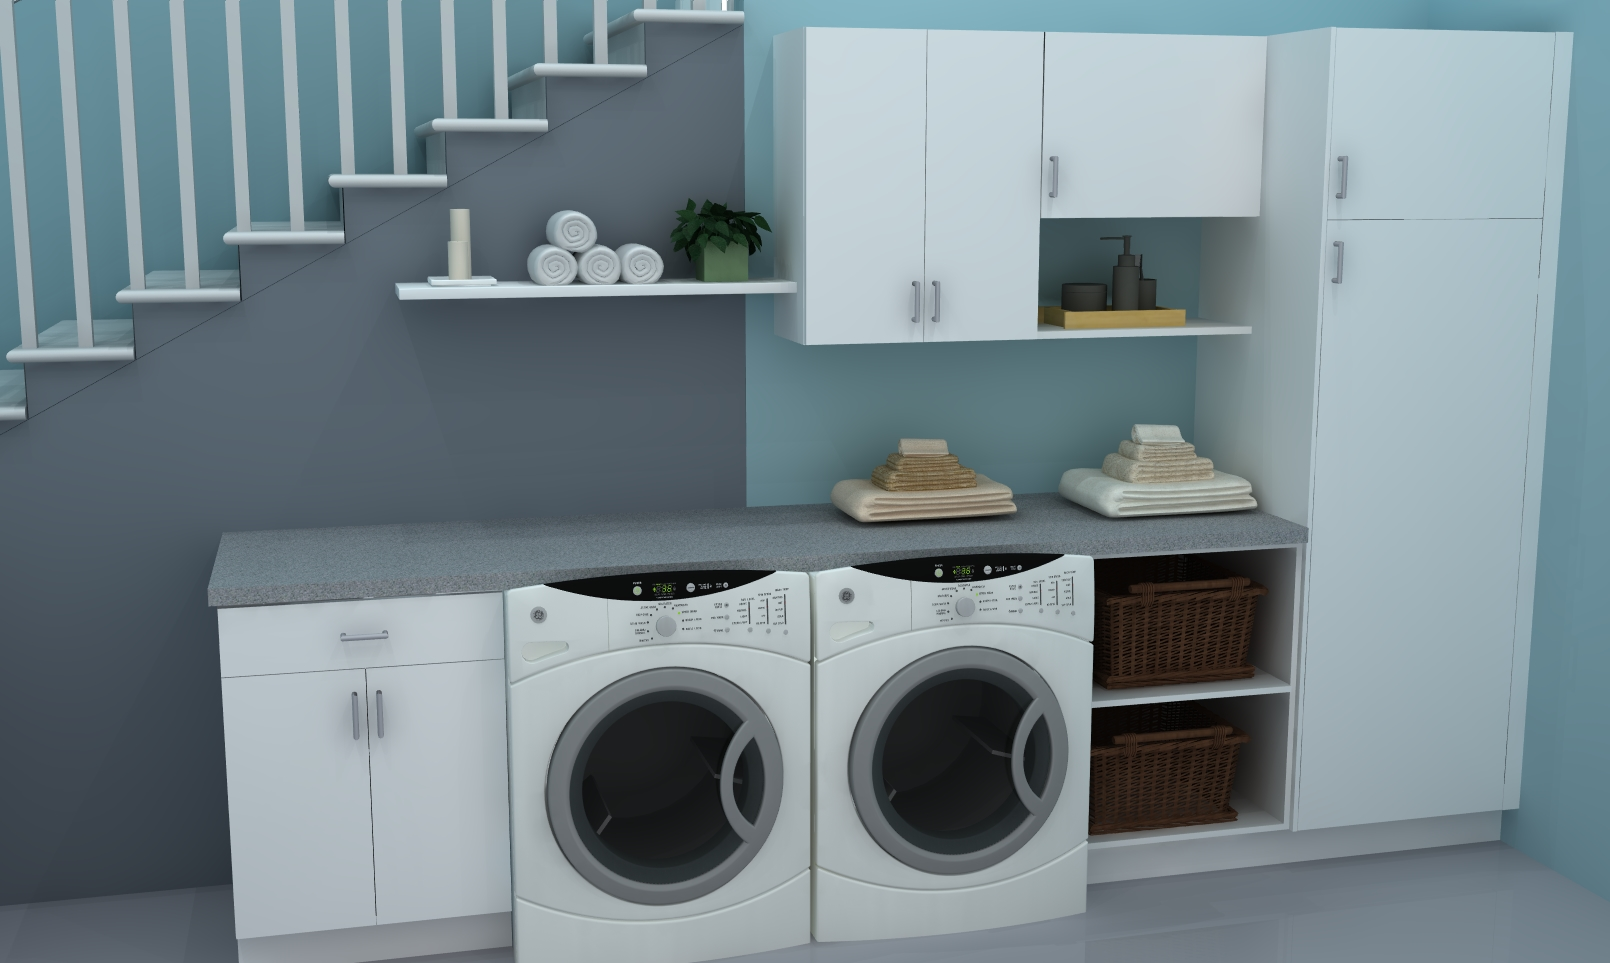 Ikea Kitchen Cabinets Cost Useful Spaces A Practical Ikea Laundry Room